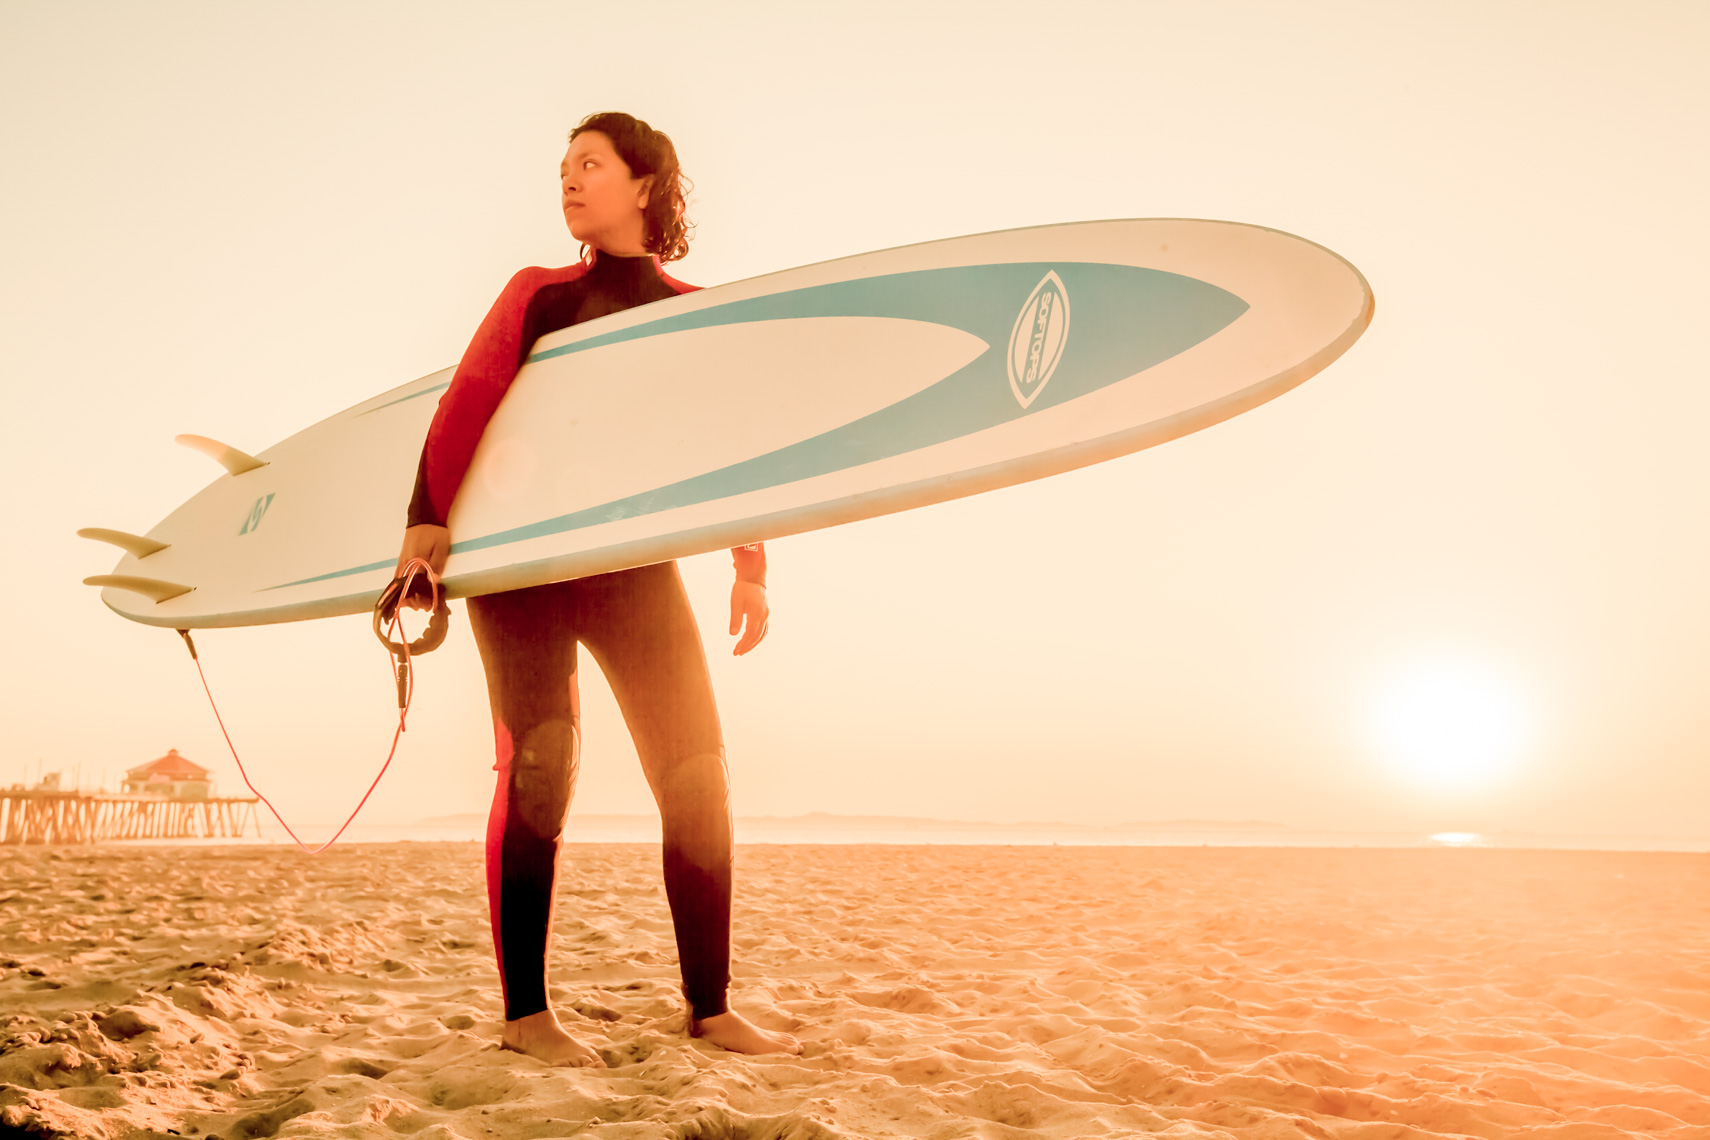 Surfer poses at sunset with surfboard at Huntington Beach, California.